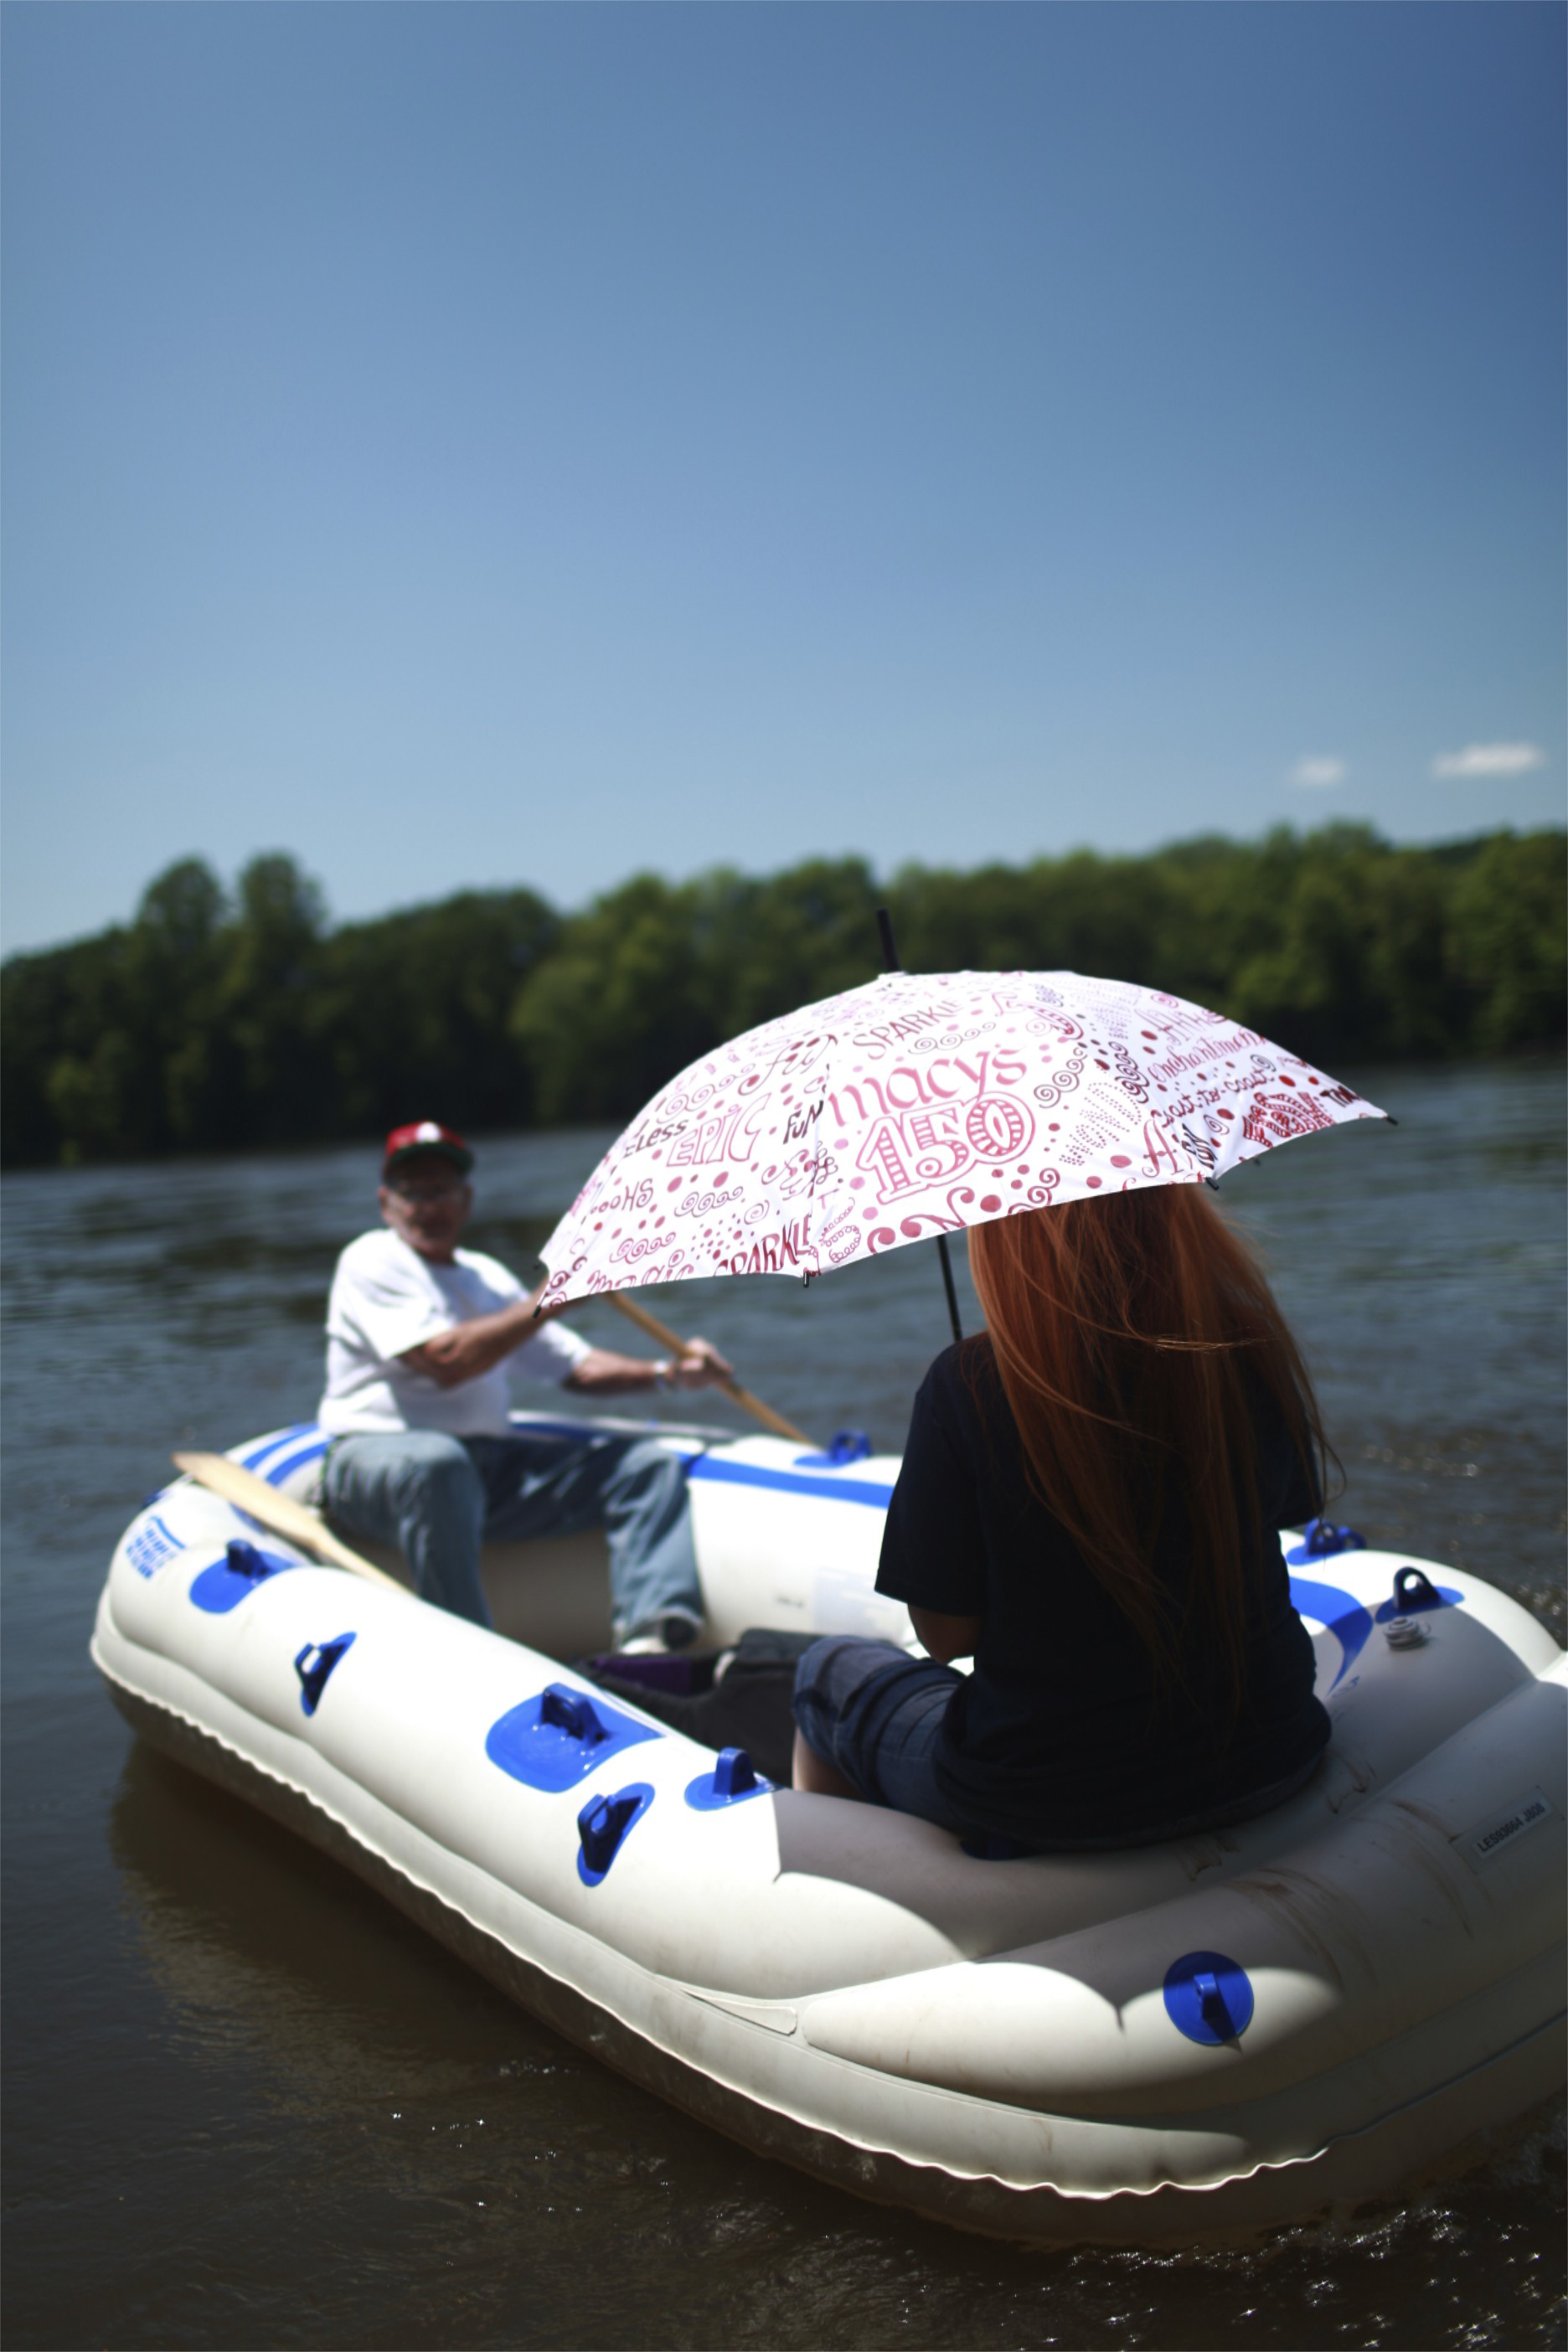 Rafts offer scenic views